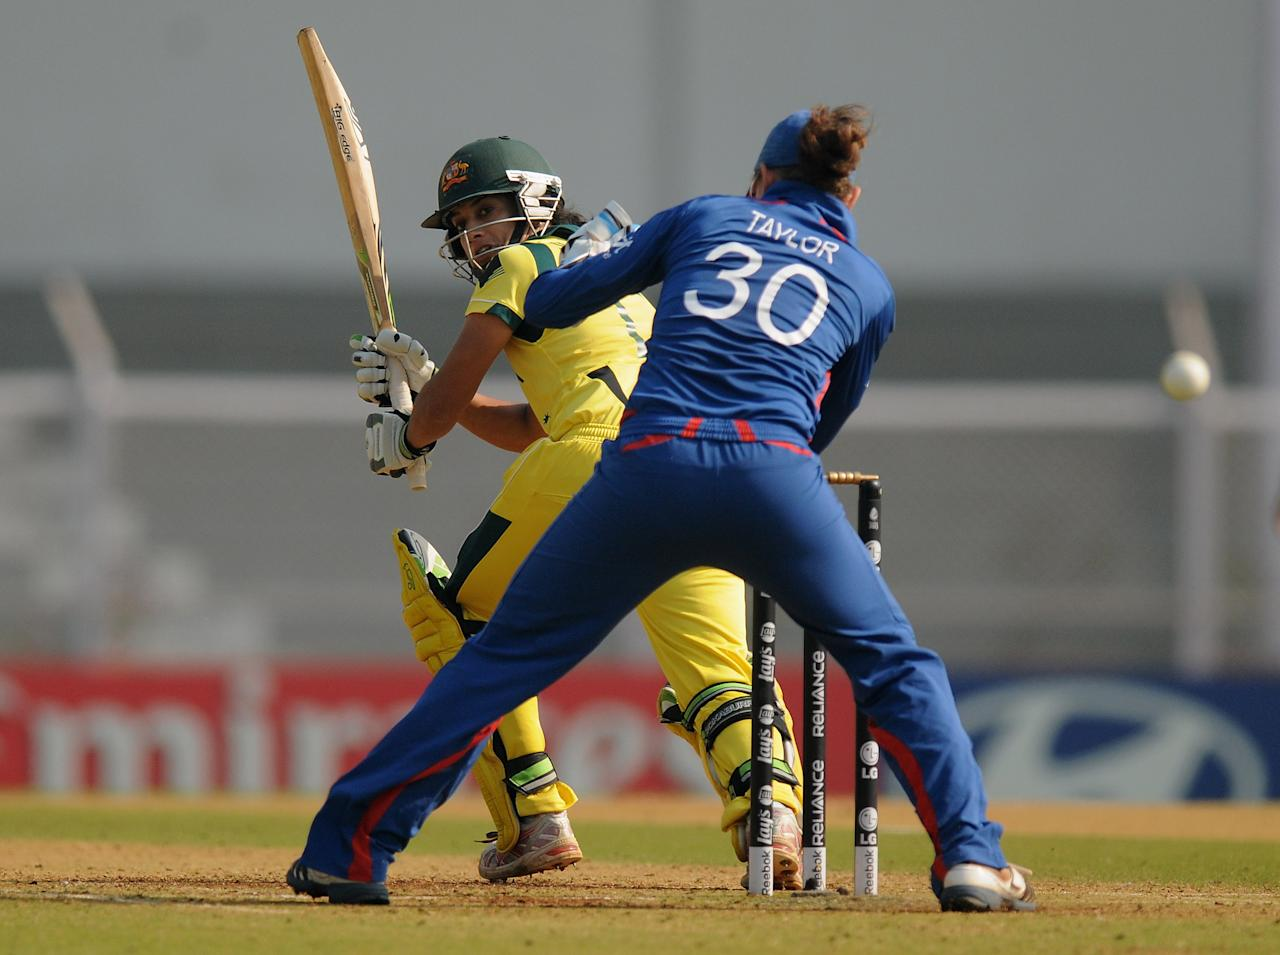 MUMBAI, INDIA - FEBRUARY 08:  Lisa Sthalekar of Australia bats during the super six match  between England and Australia held at the CCI (Cricket Club of India)  on February 8, 2013 in Mumbai, India.  (Photo by Pal Pillai/Getty Images)